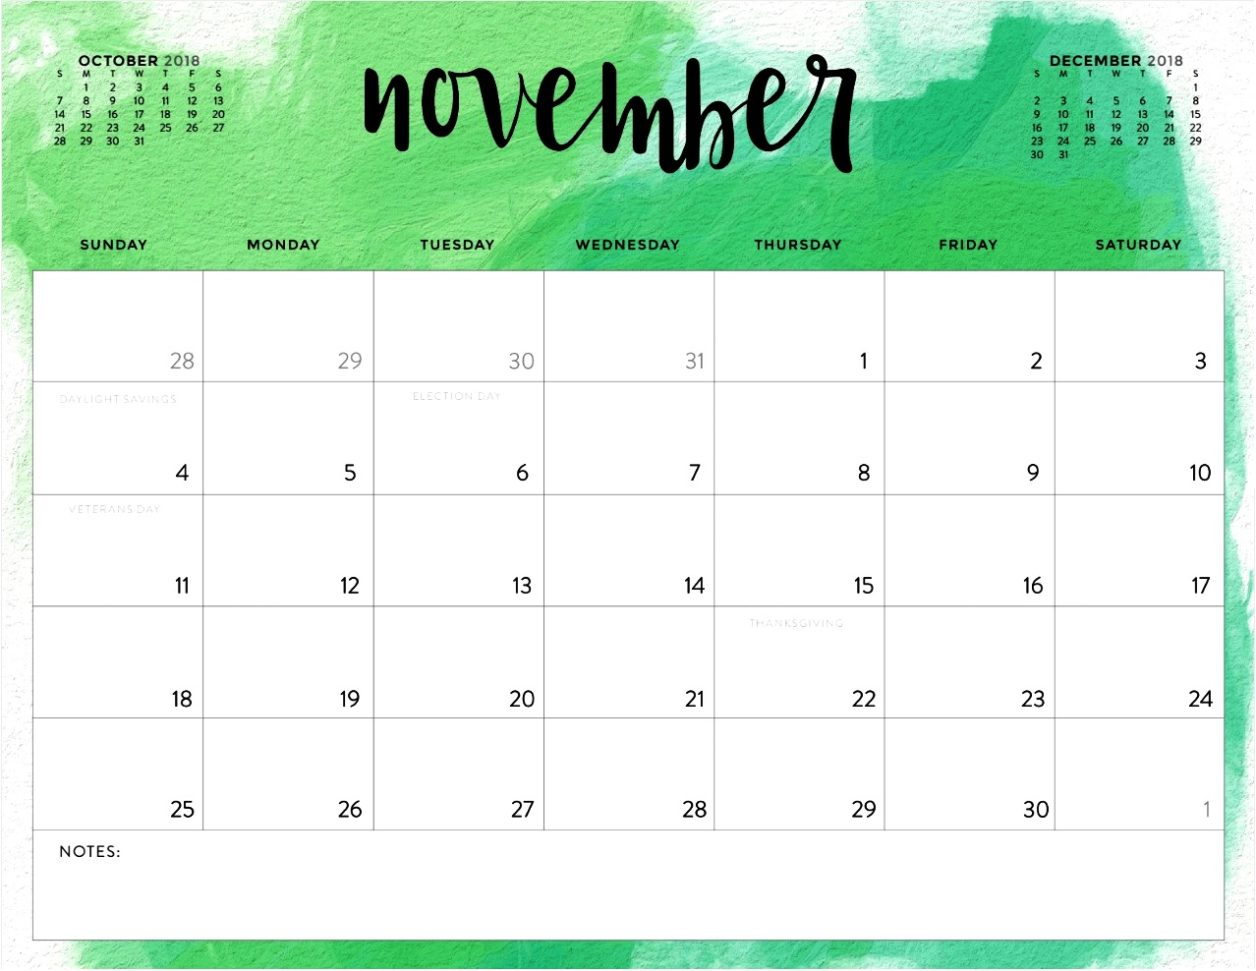 100 Cute November 2018 Calendar Wall Floral Designs Images Pictures